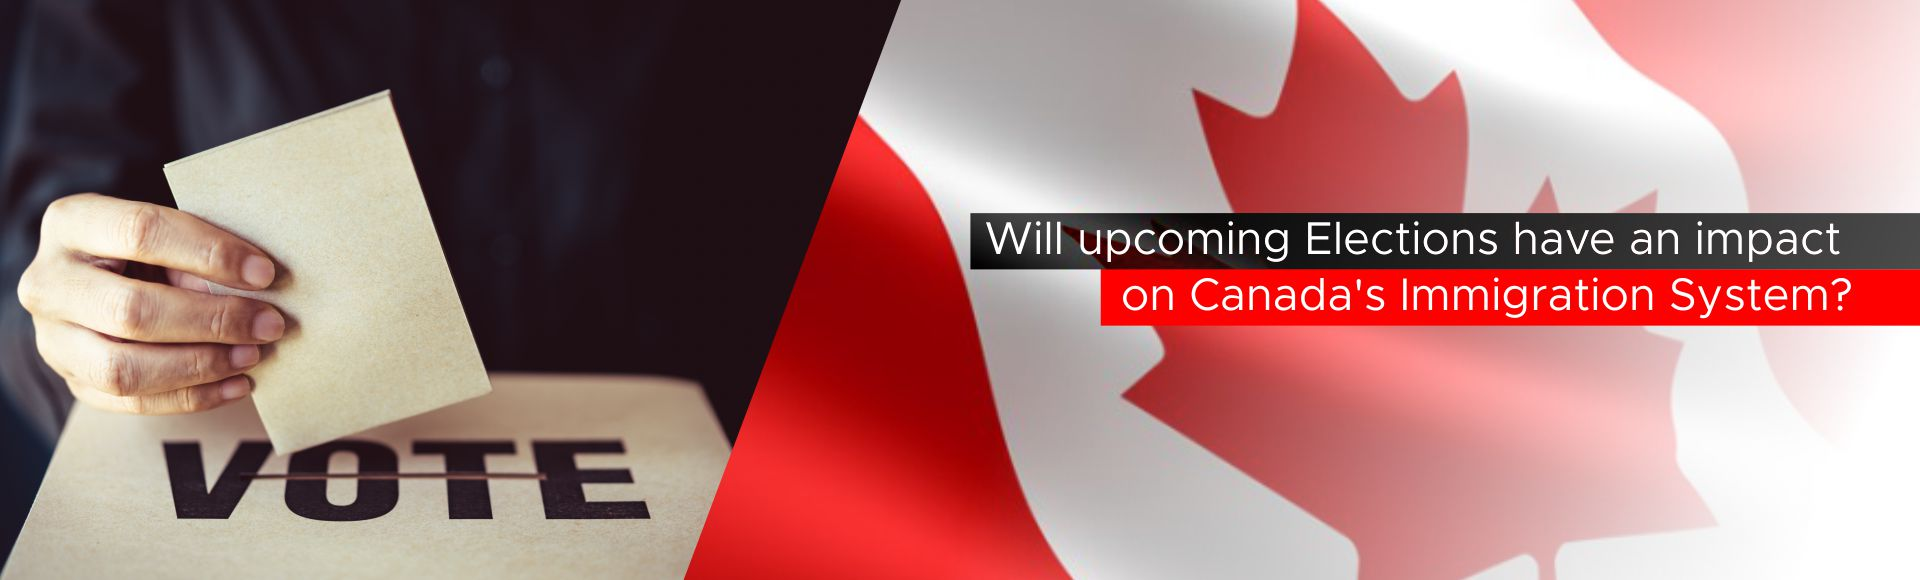 Will Upcoming Elections have an Impact on Canada's Immigration System?